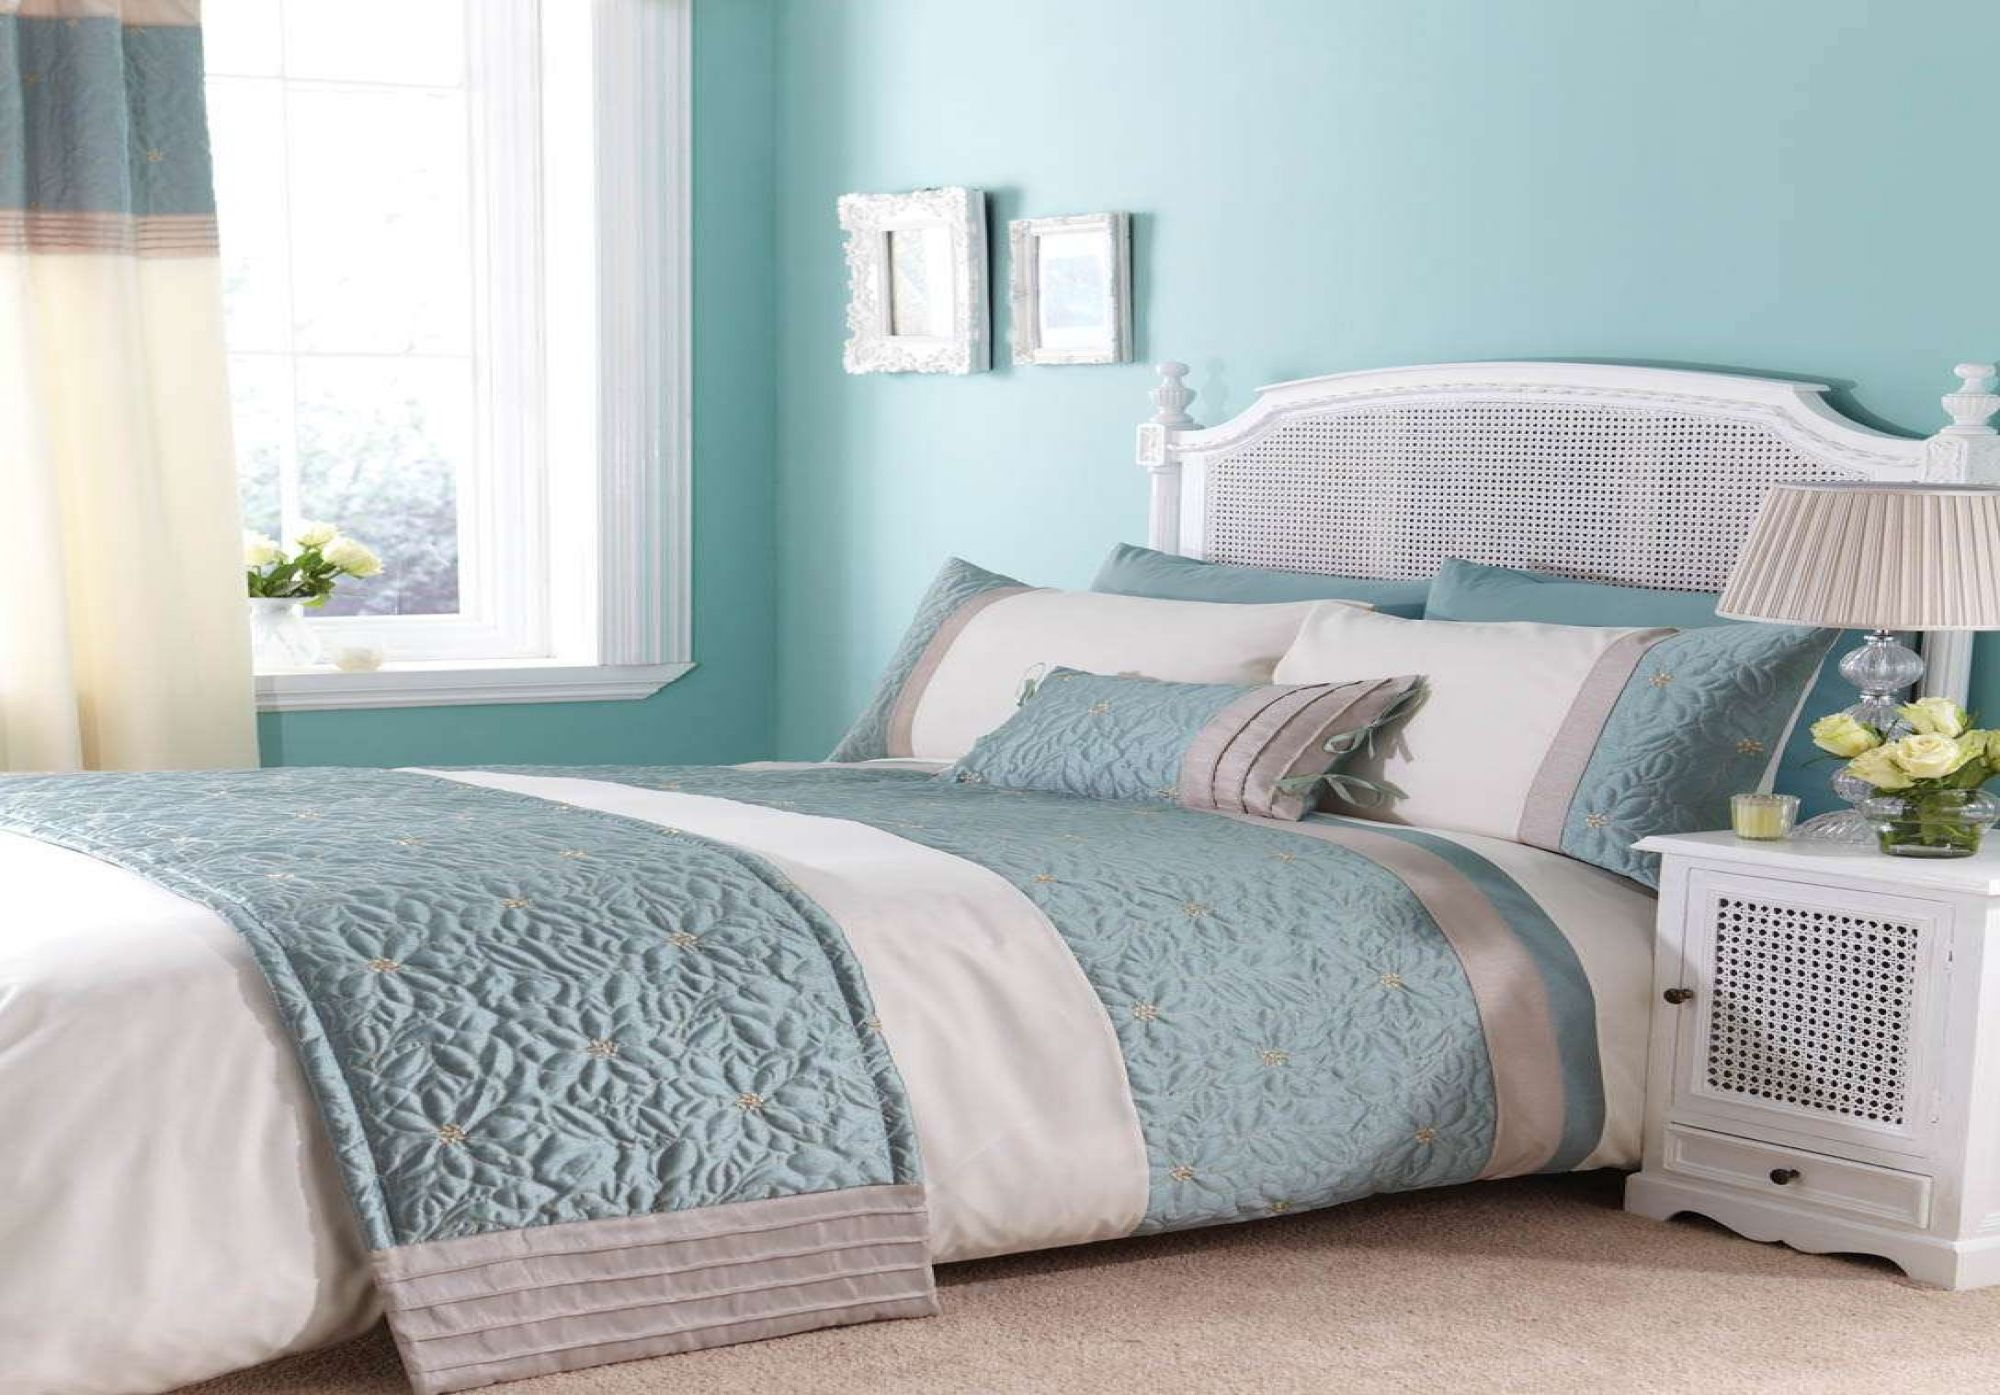 gorgeous bed dressings simply duck egg blue pinterest. Black Bedroom Furniture Sets. Home Design Ideas